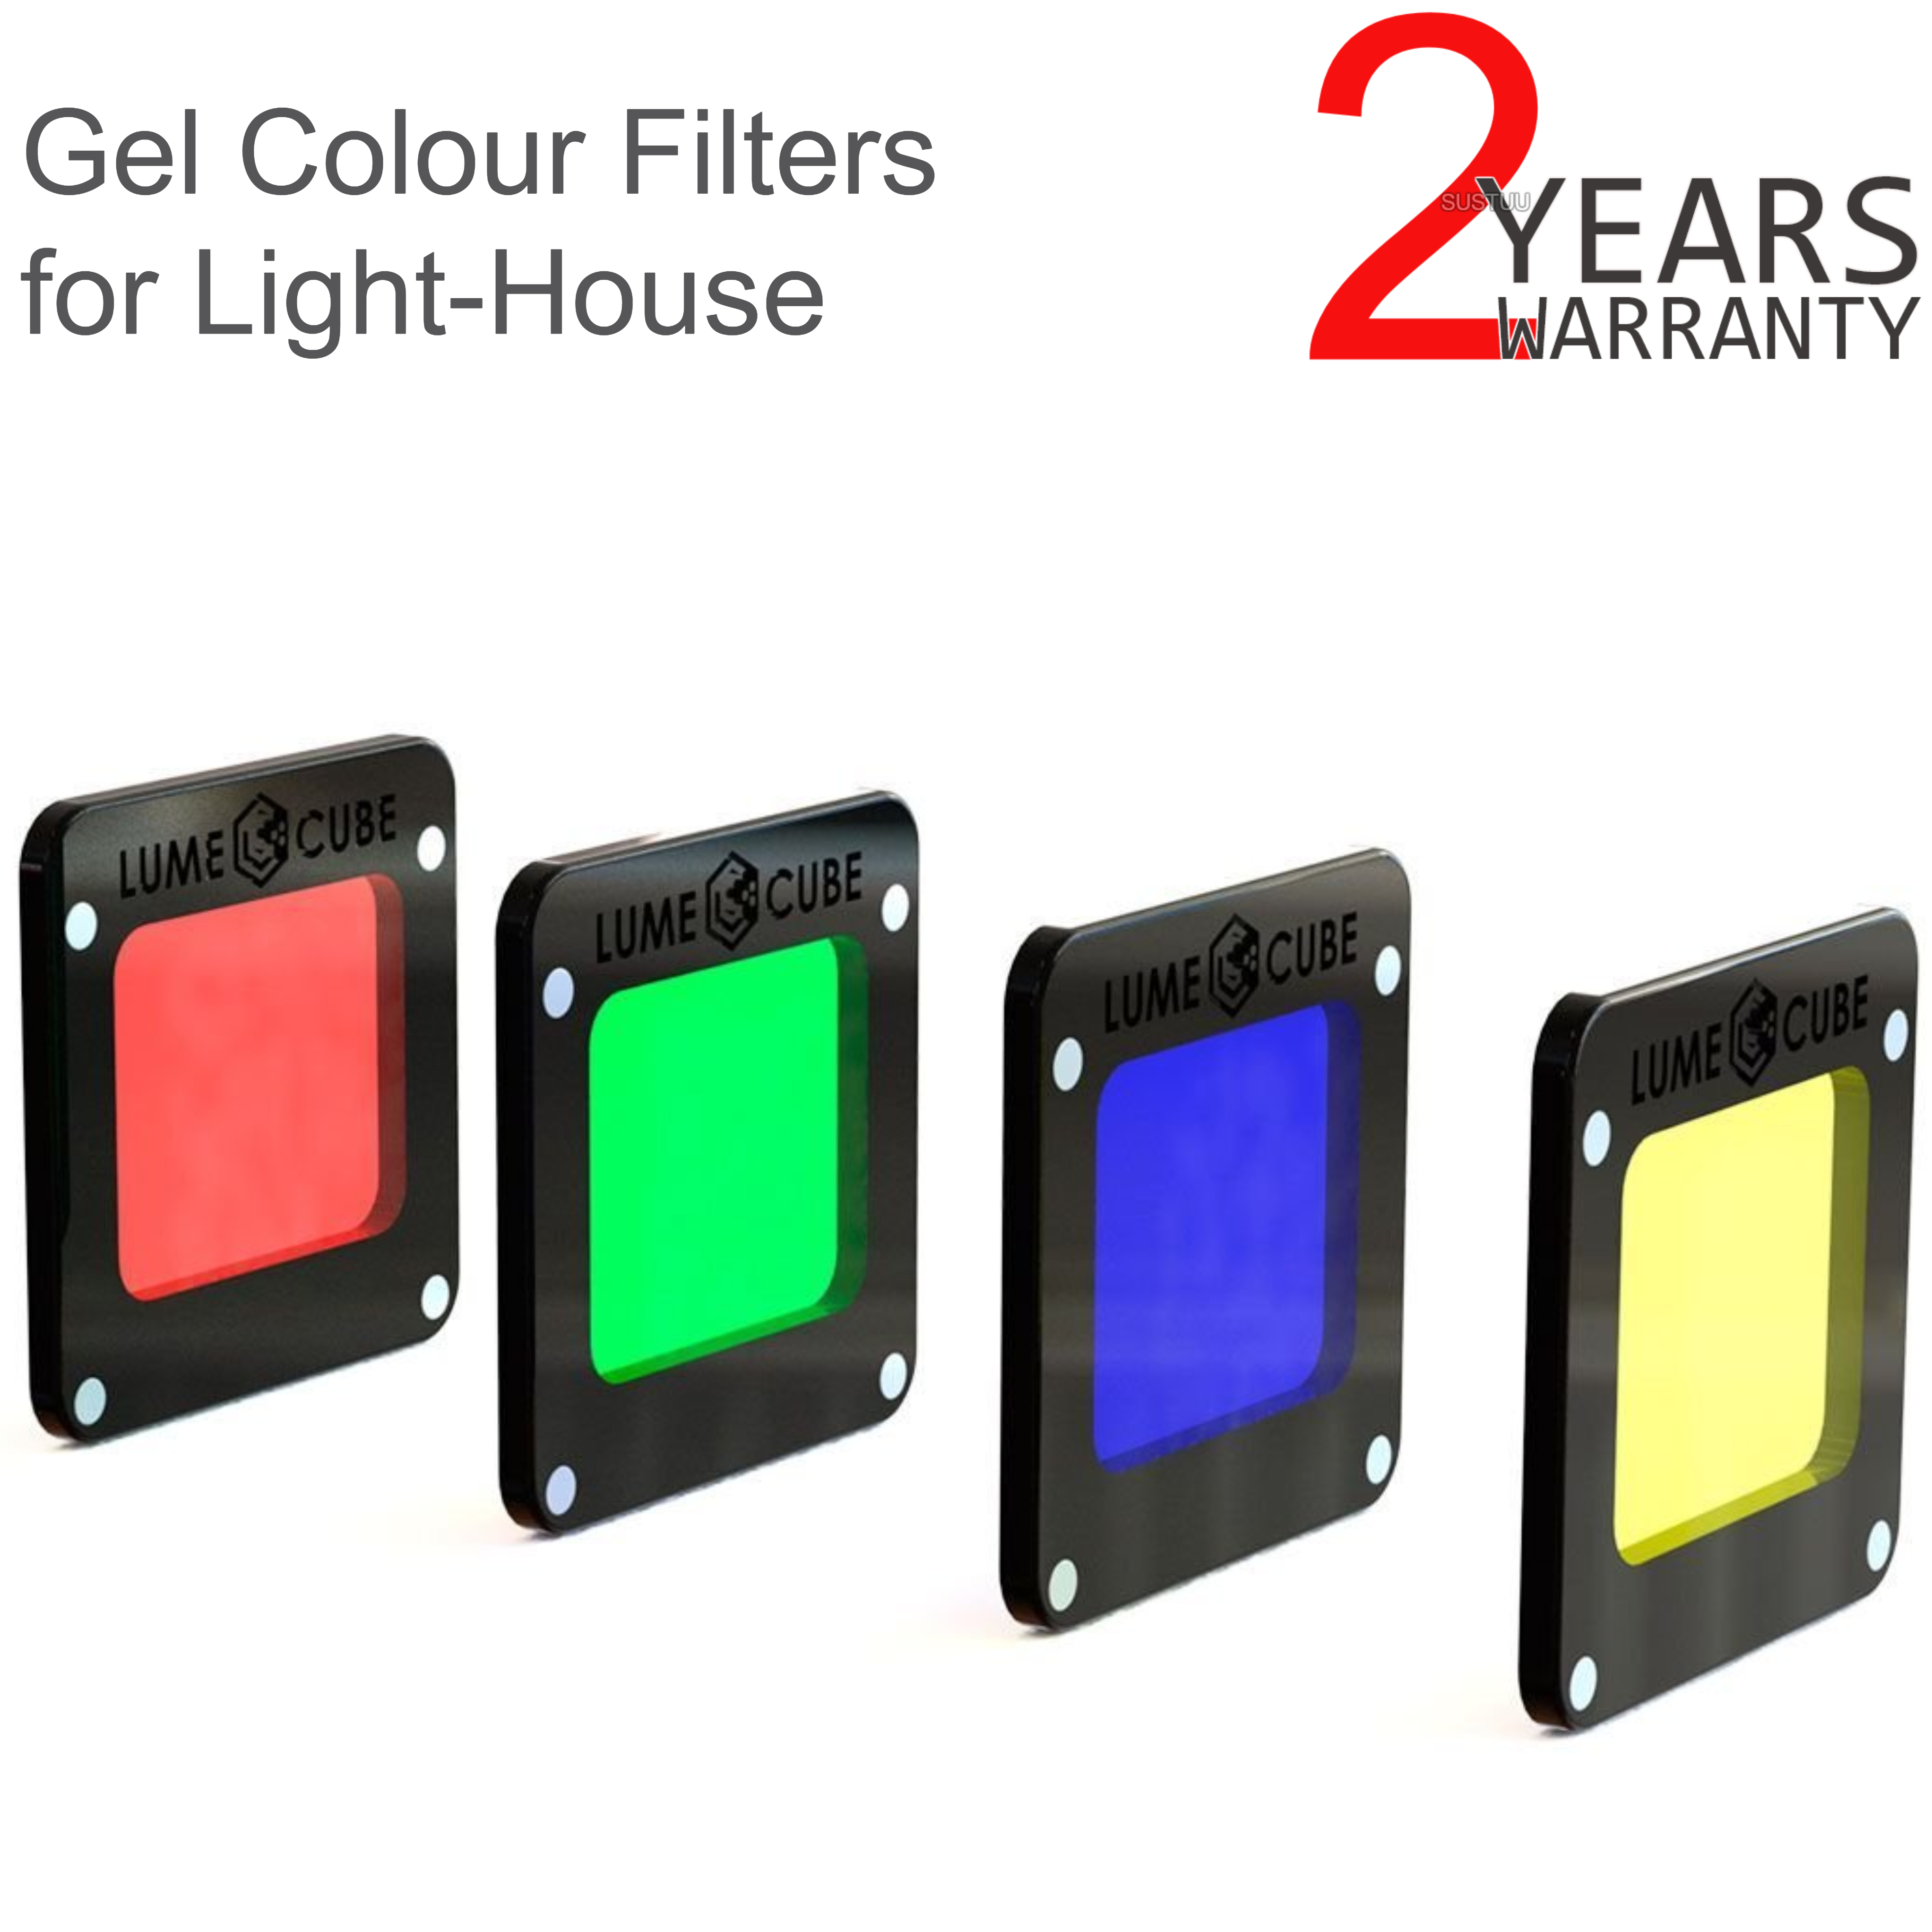 Lume Cube Professional RBGY Gel Colour Pack for Light-House | Durable Filters | NEW